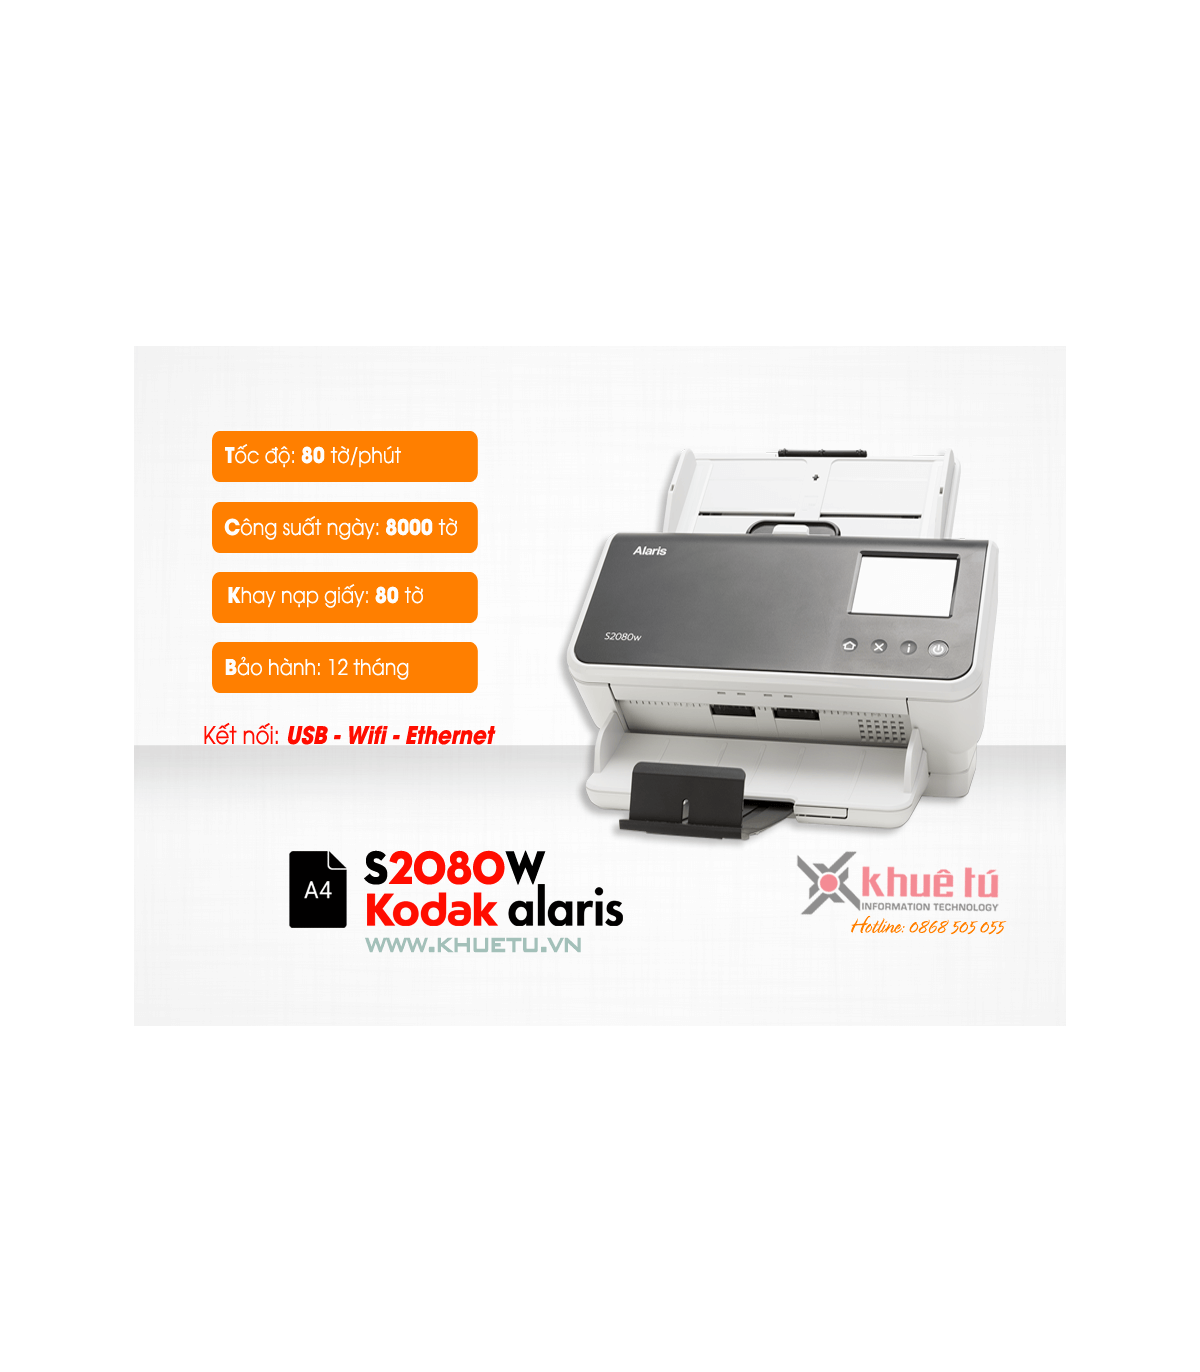 Máy scan, scanner Kodak Alaris S2080W (80ppm, 8000ppd, A4, Wifi, RJ45)  | Workgroup  | Kodak  | khuetu.vn